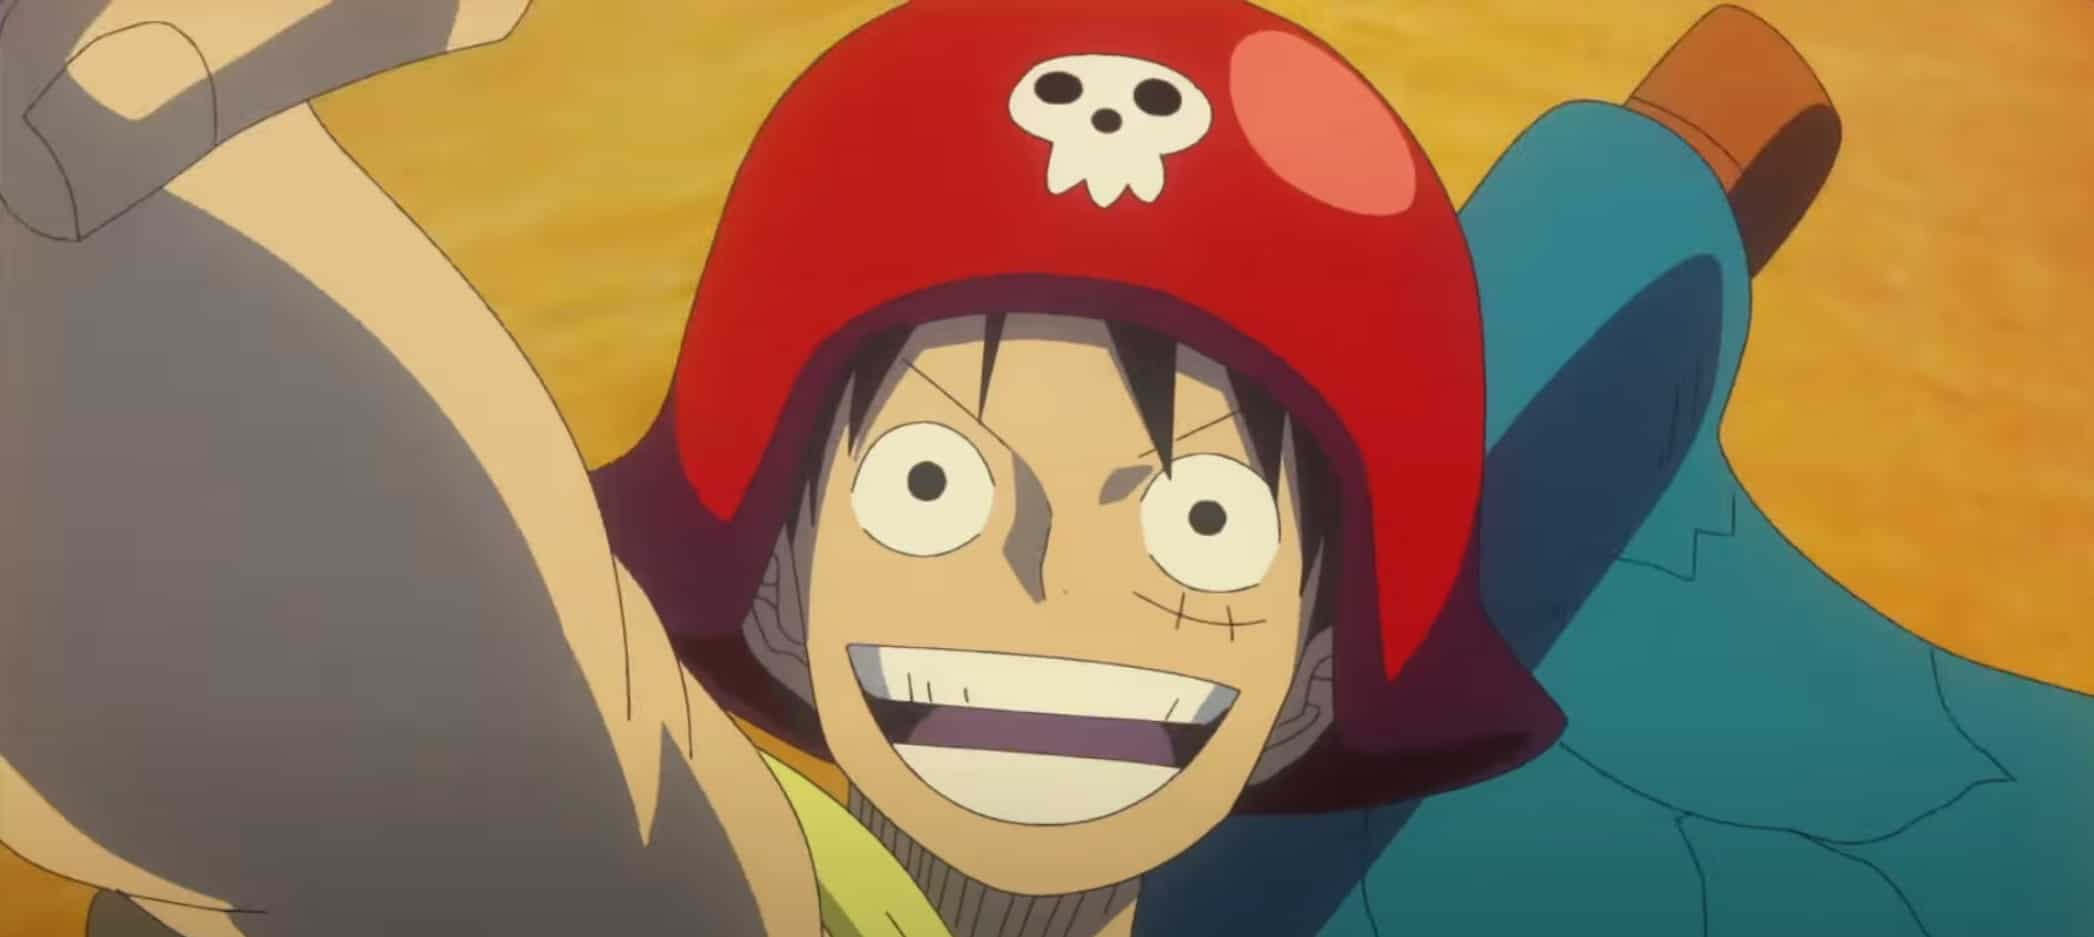 Which_Came_First _- _Anime_Or_Manga_one_piece